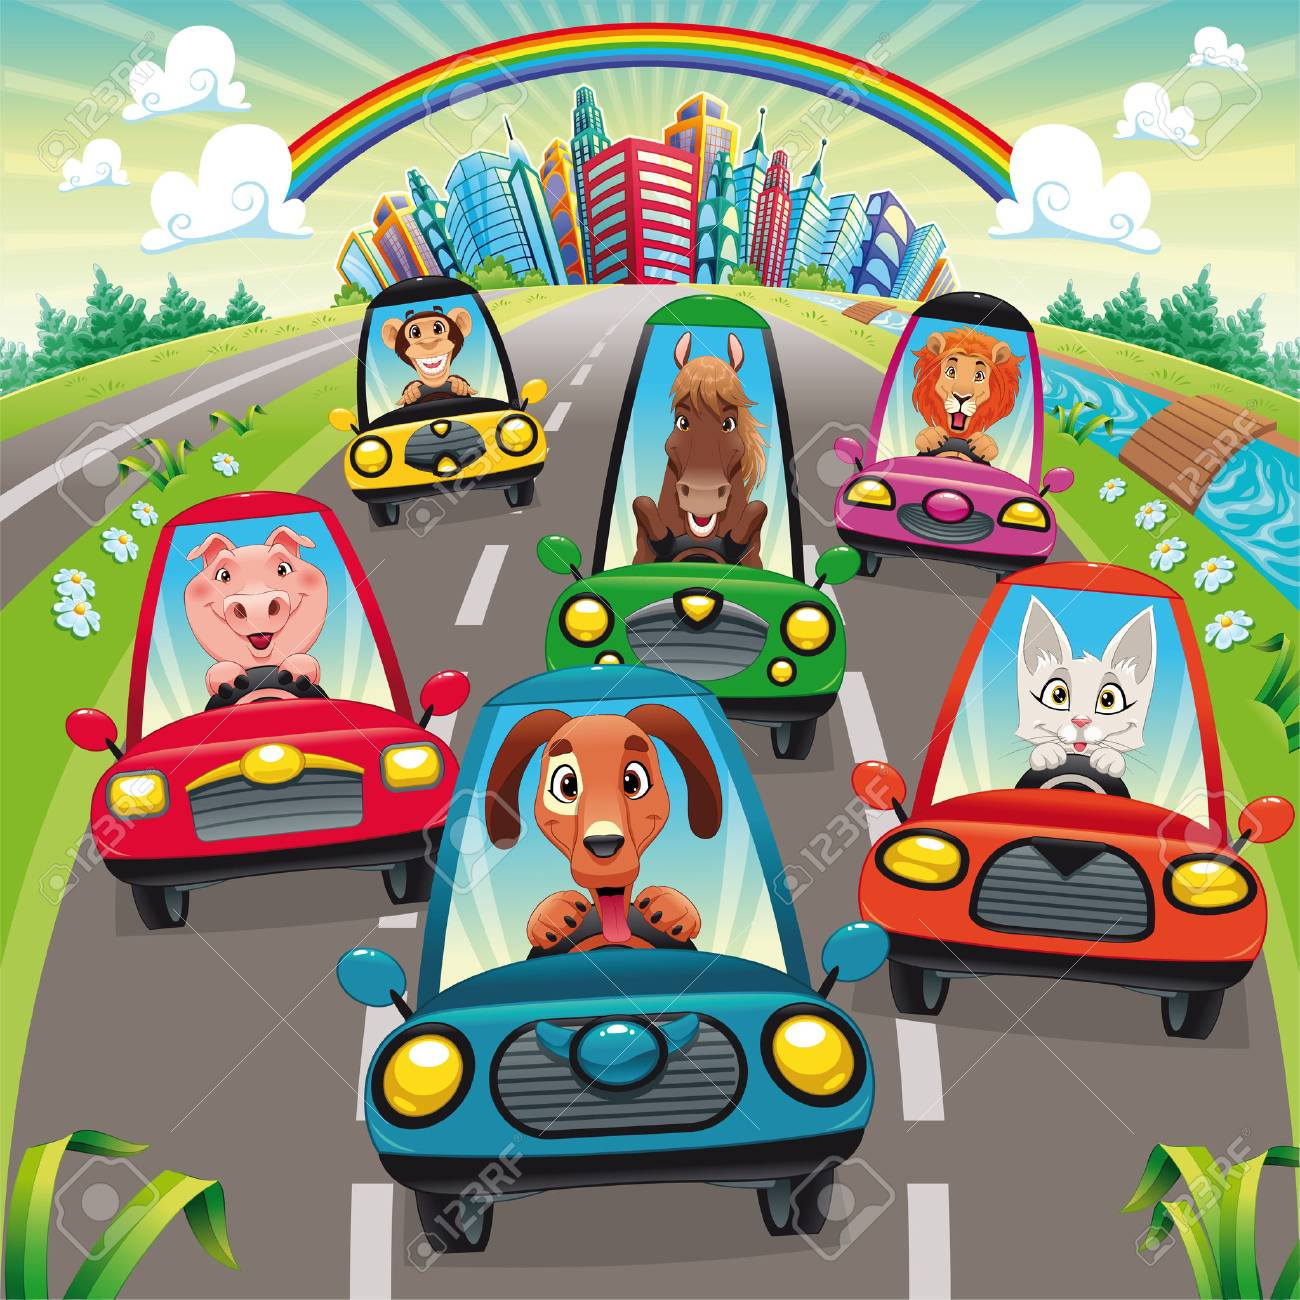 Traffic on the road. Funny cartoon and vector illustration, isolated objects. Stock Vector - 7610928